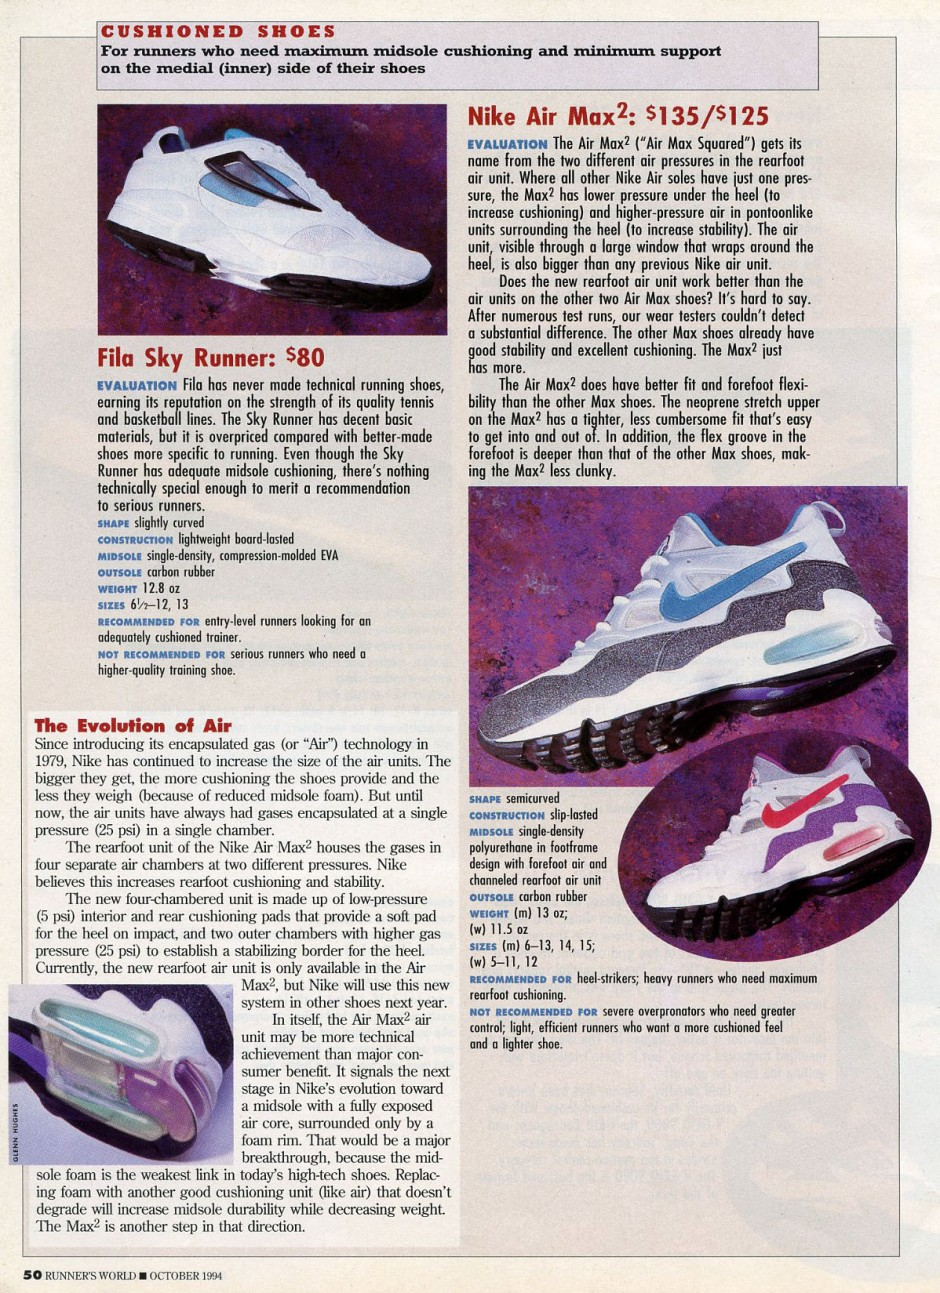 Air Max 2 runner review.jpg